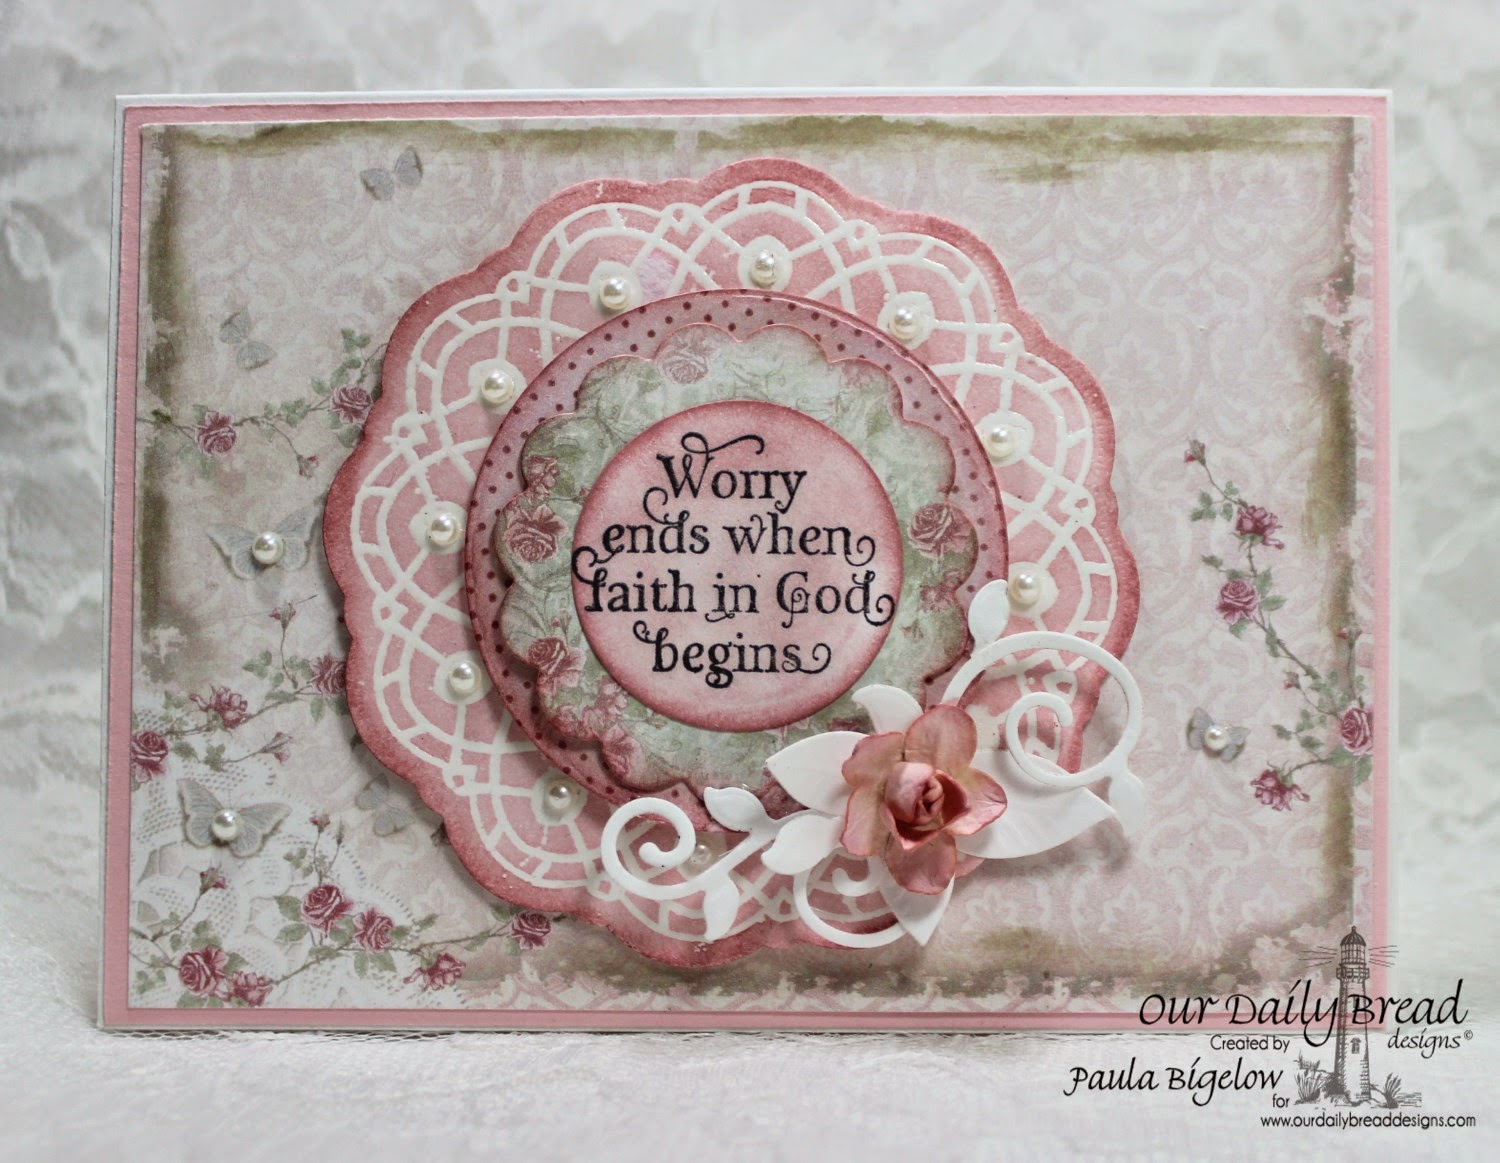 Our Daily Bread Designs, God Quotes, Recipe & Tags, Doily, Circle Ornaments, Fancy Foliage, Shabby Rose Collection, Designed by Paula Bigelow